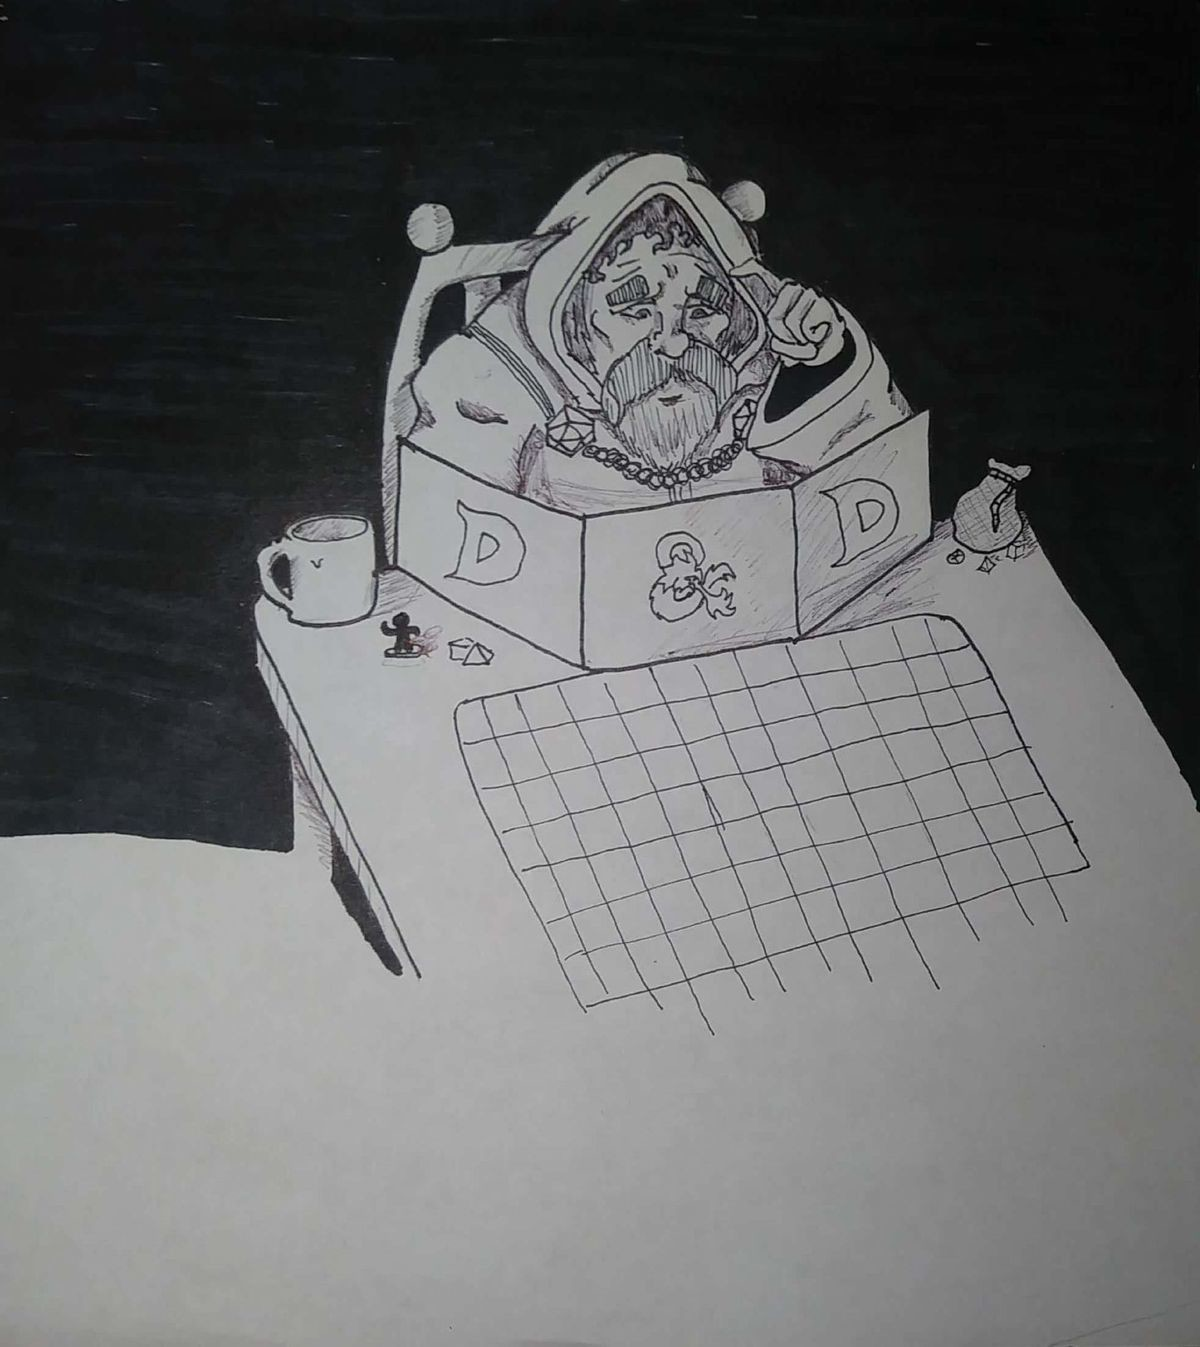 Dm Inktober day 5. Day 5 prompt. Build is the prompt, so I drew a Dm world building. He seems to be at a loss at what to do next after players have essentially